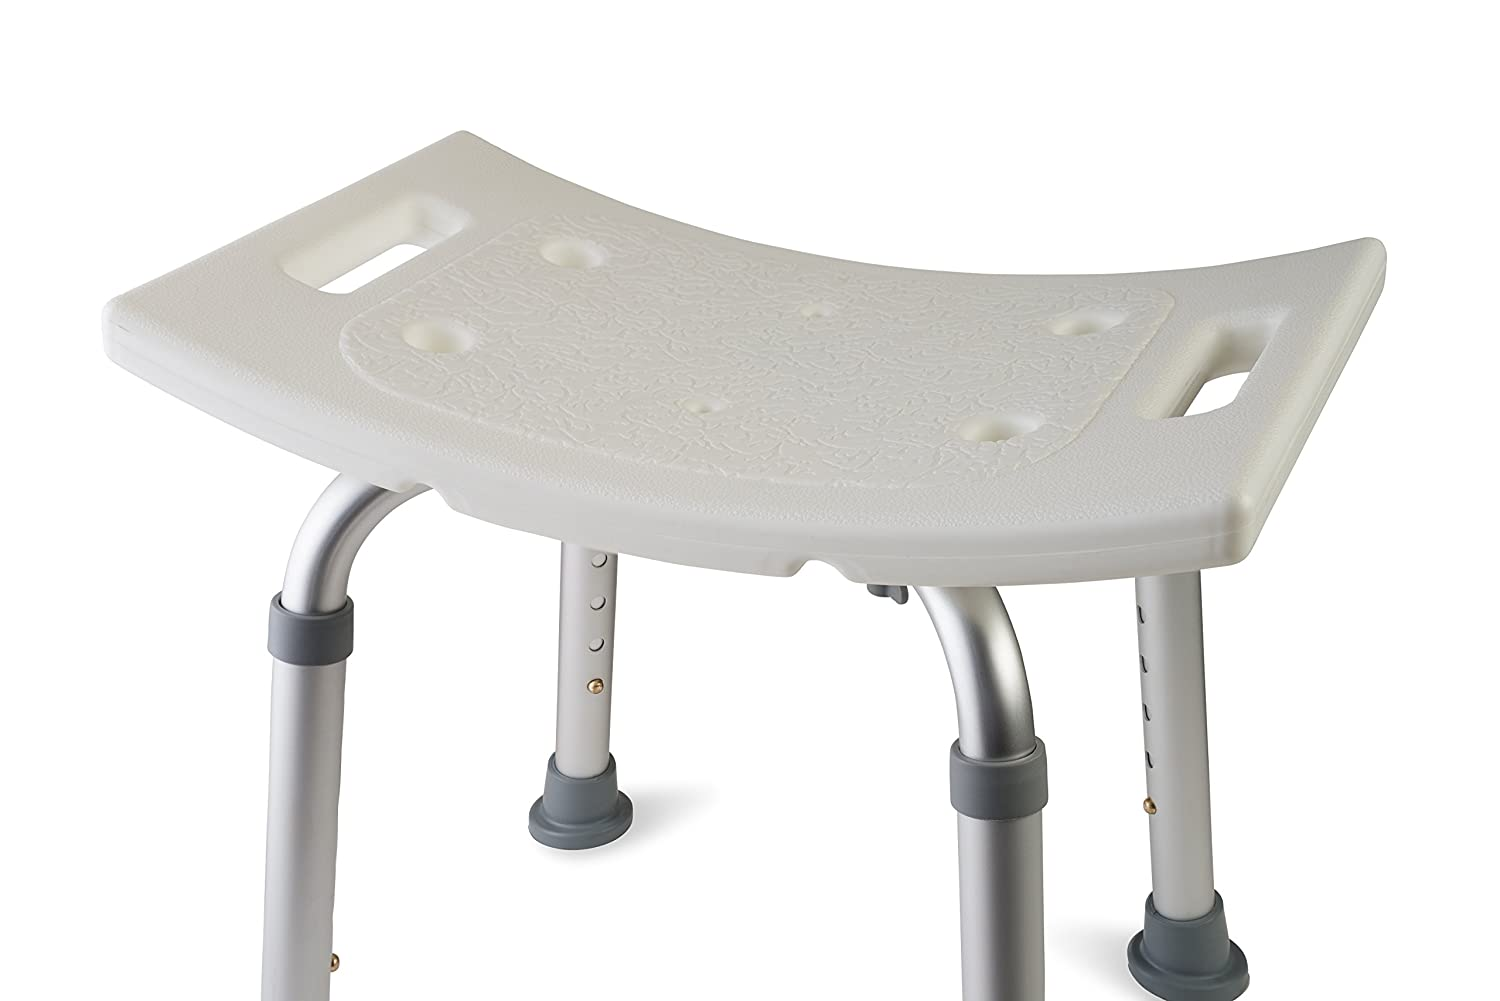 Amazon.com: Dr Kayu0027s Adjustable Height Bath And Shower Seat Top Rated Shower  Bench: Health U0026 Personal Care